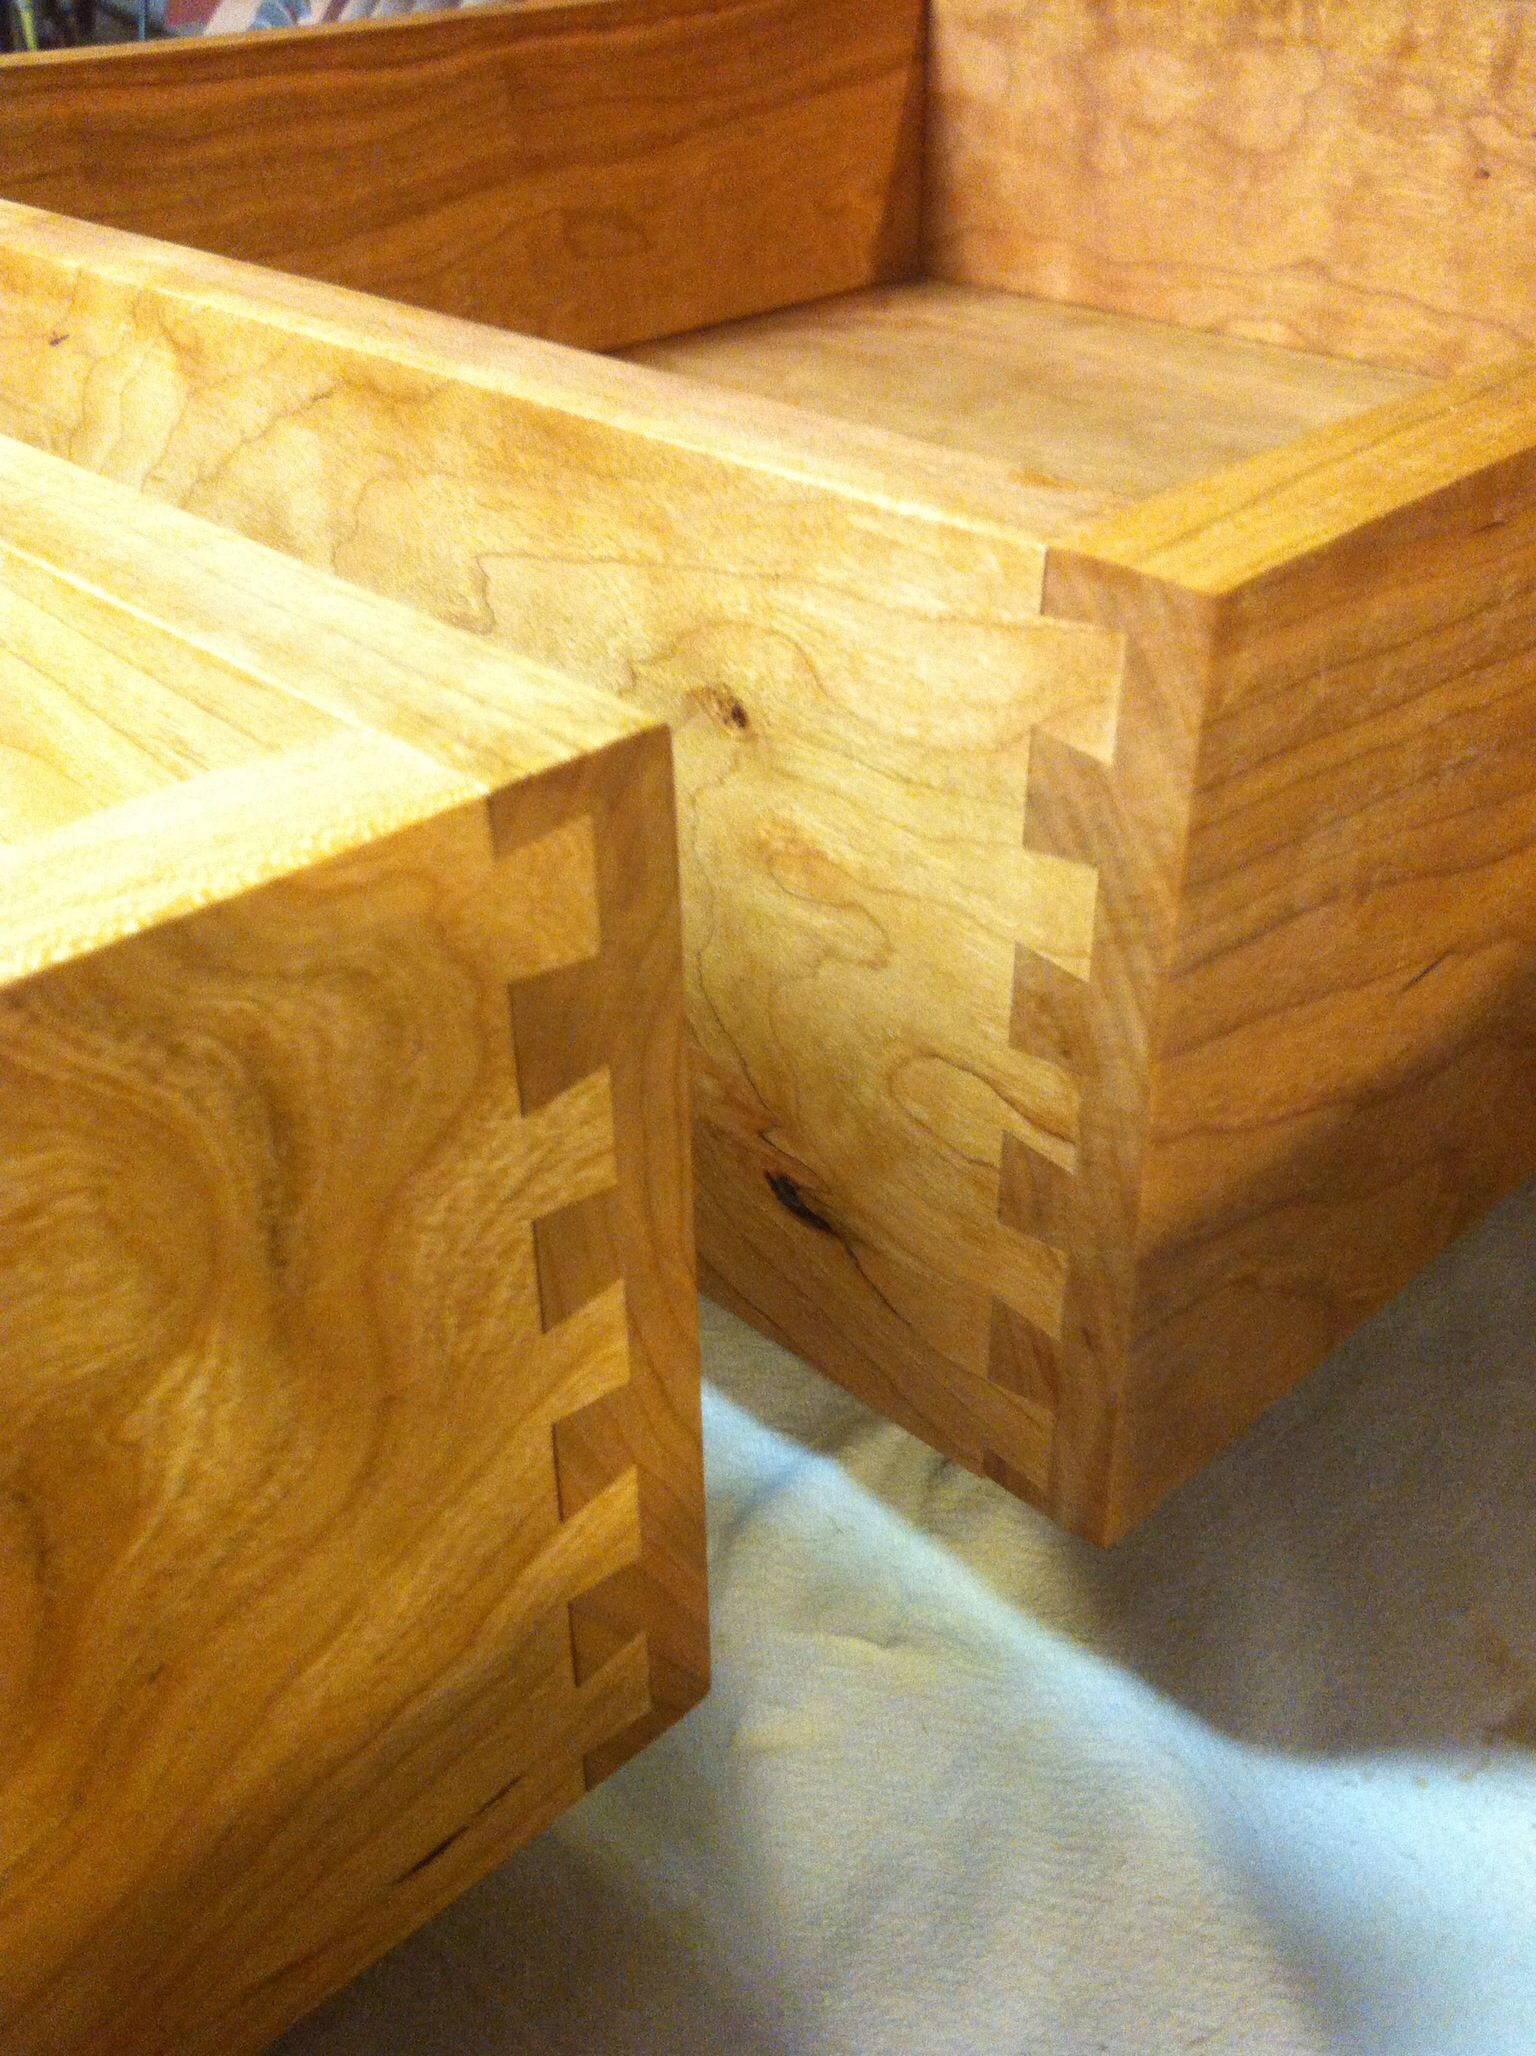 Cherry dovetail drawers.